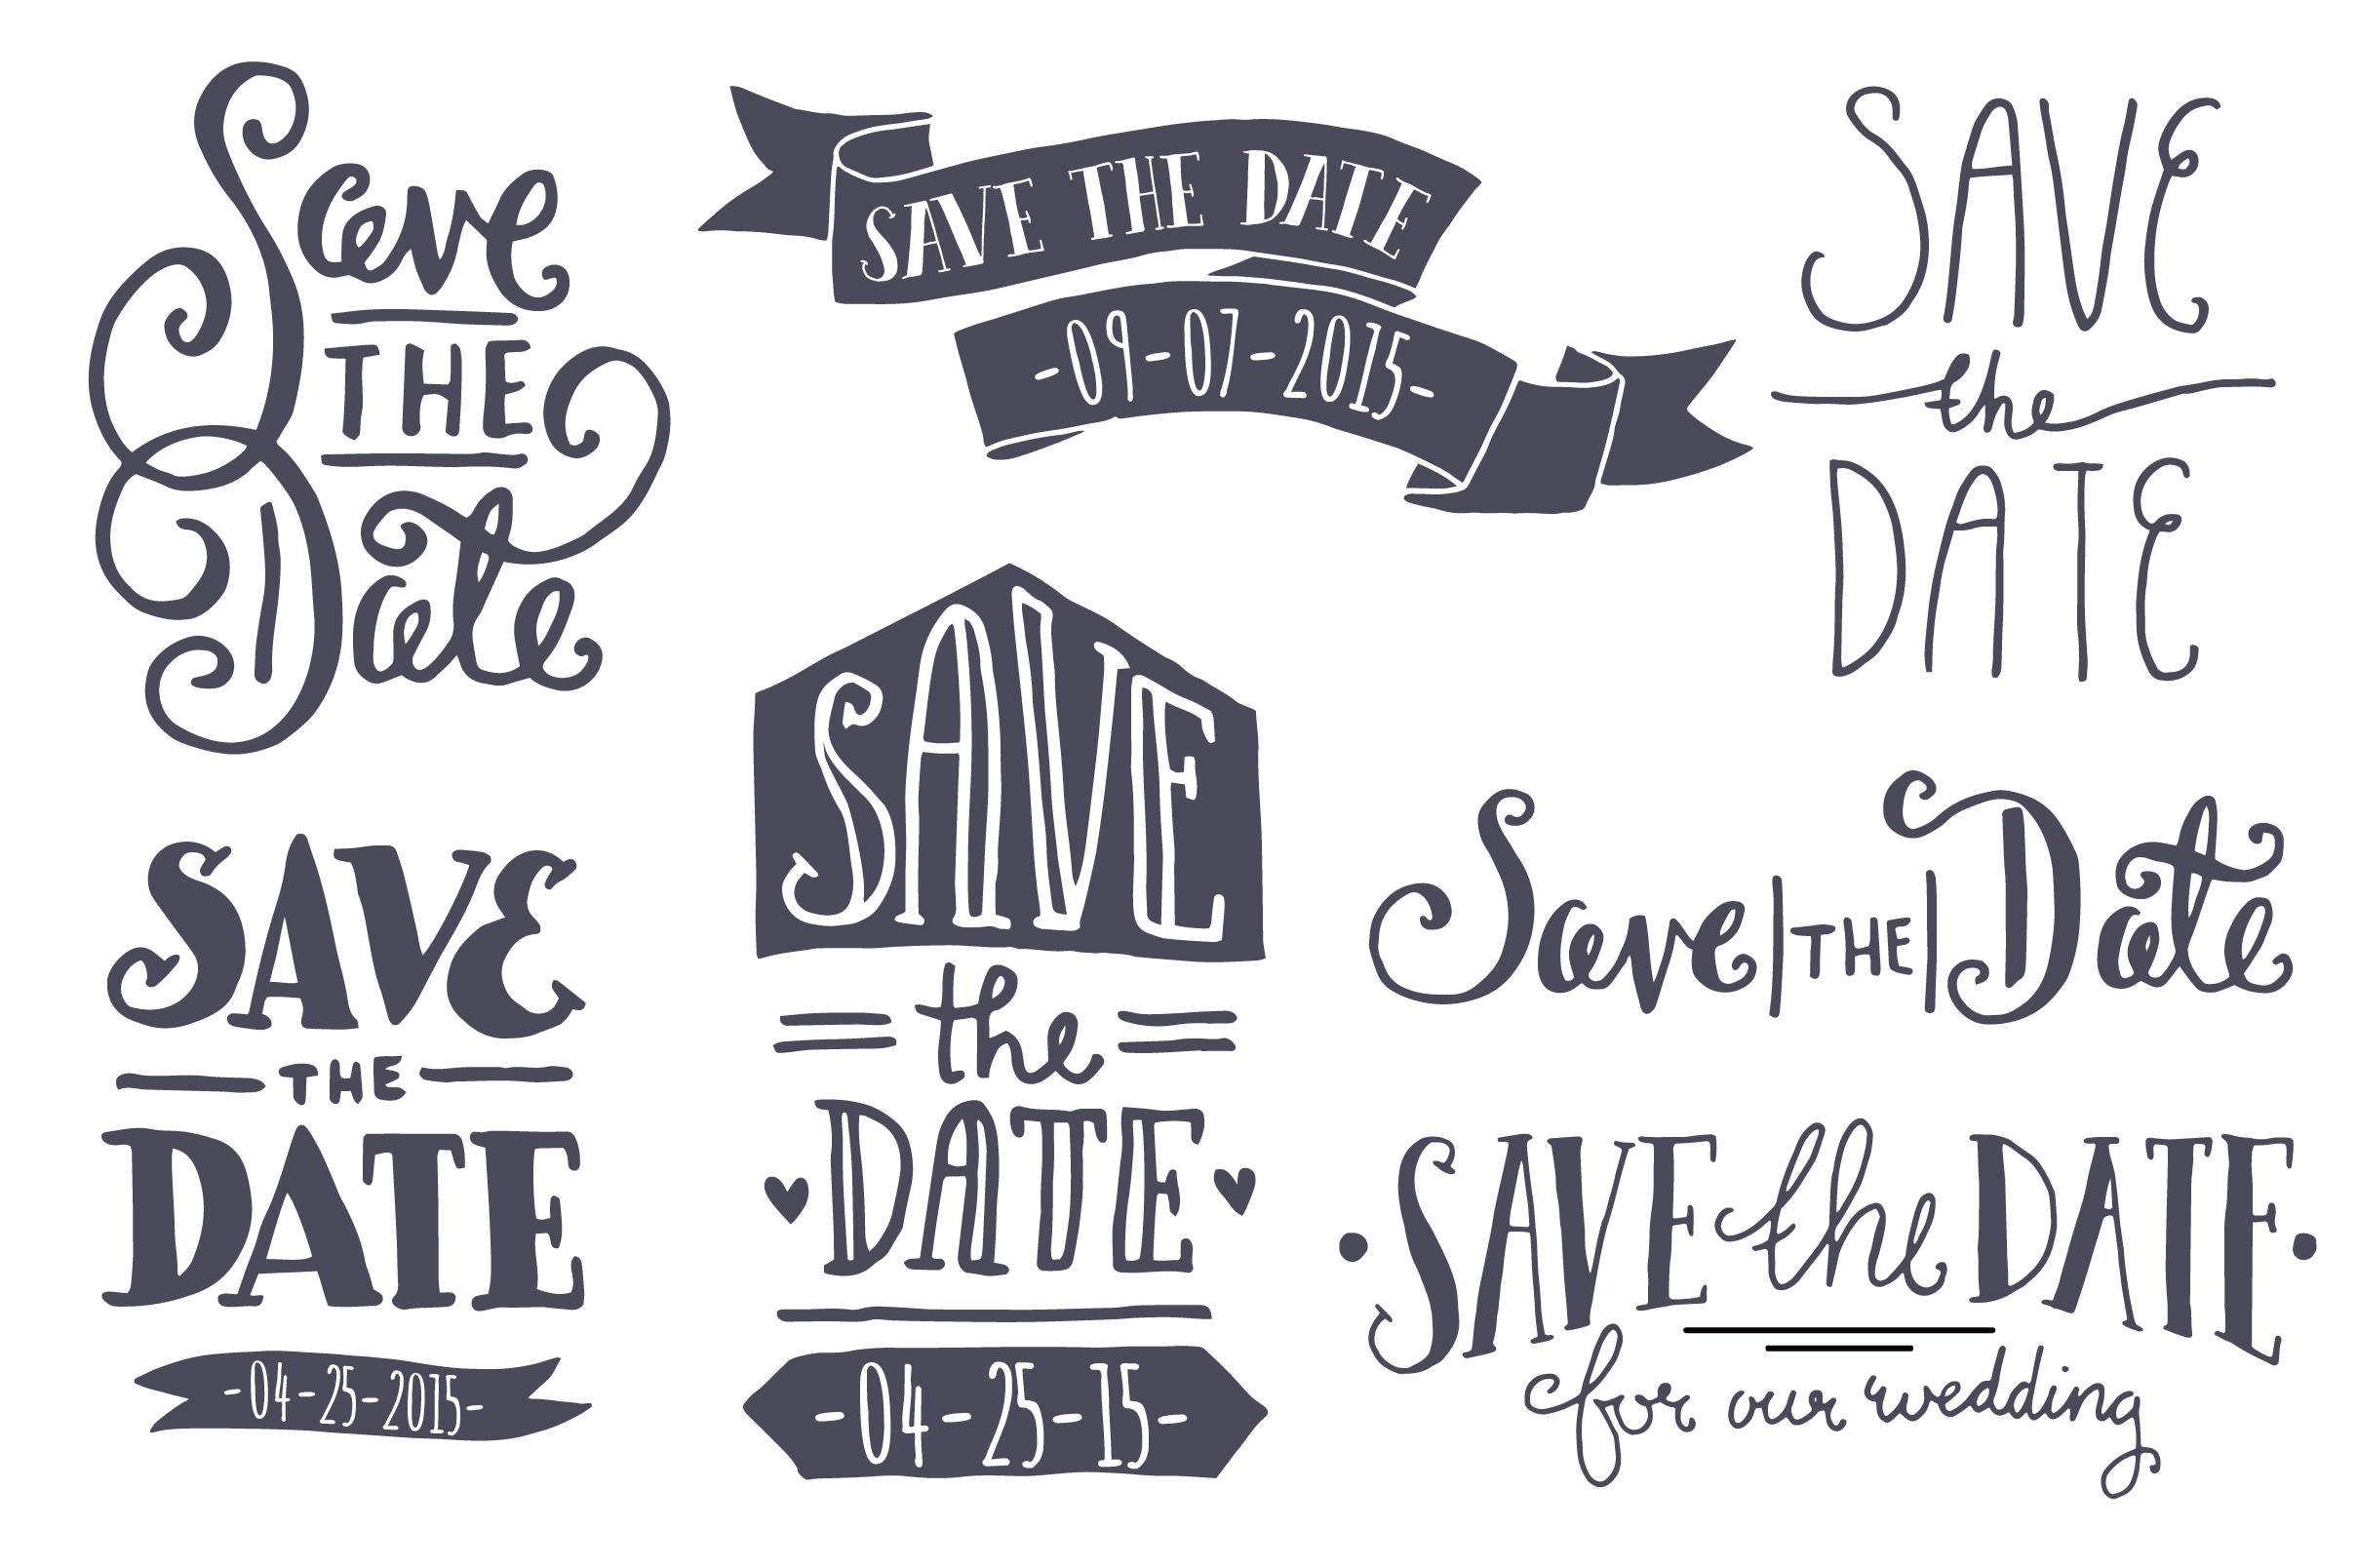 save the date font templates canre klonec co